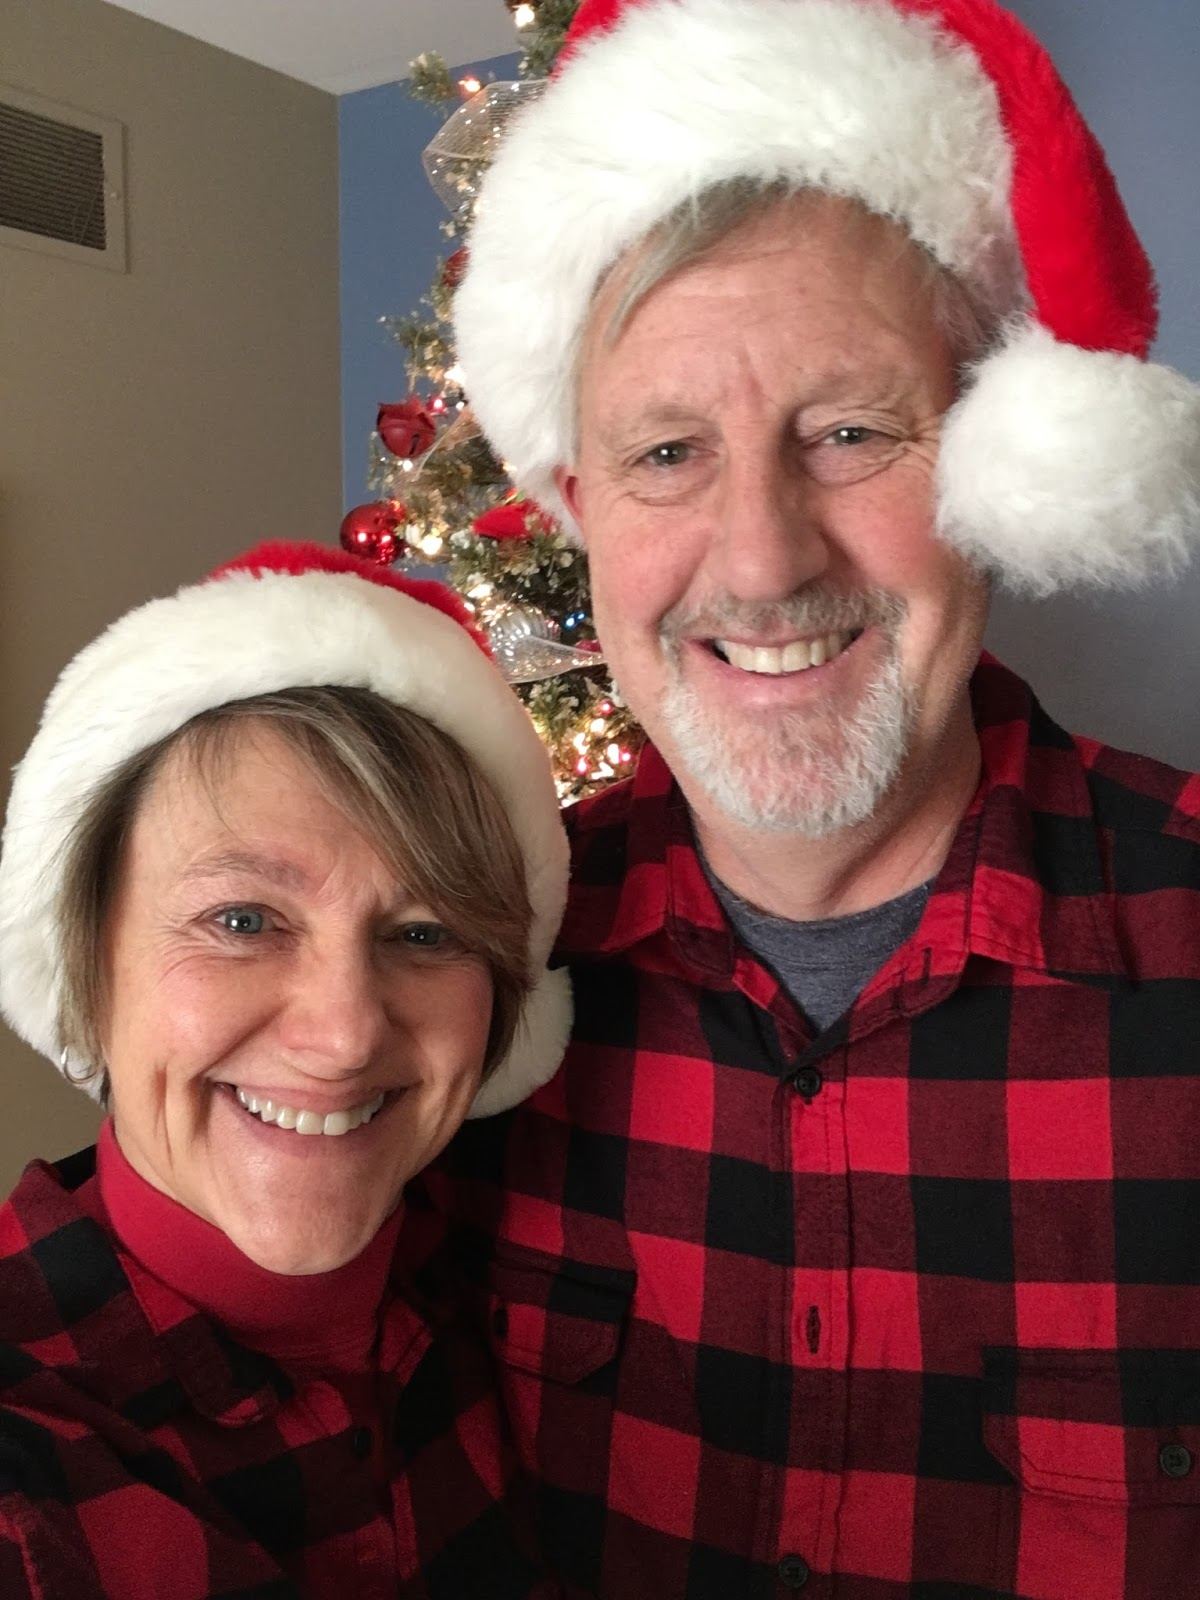 Randomocity: It Was a Merry Flannel Christmas